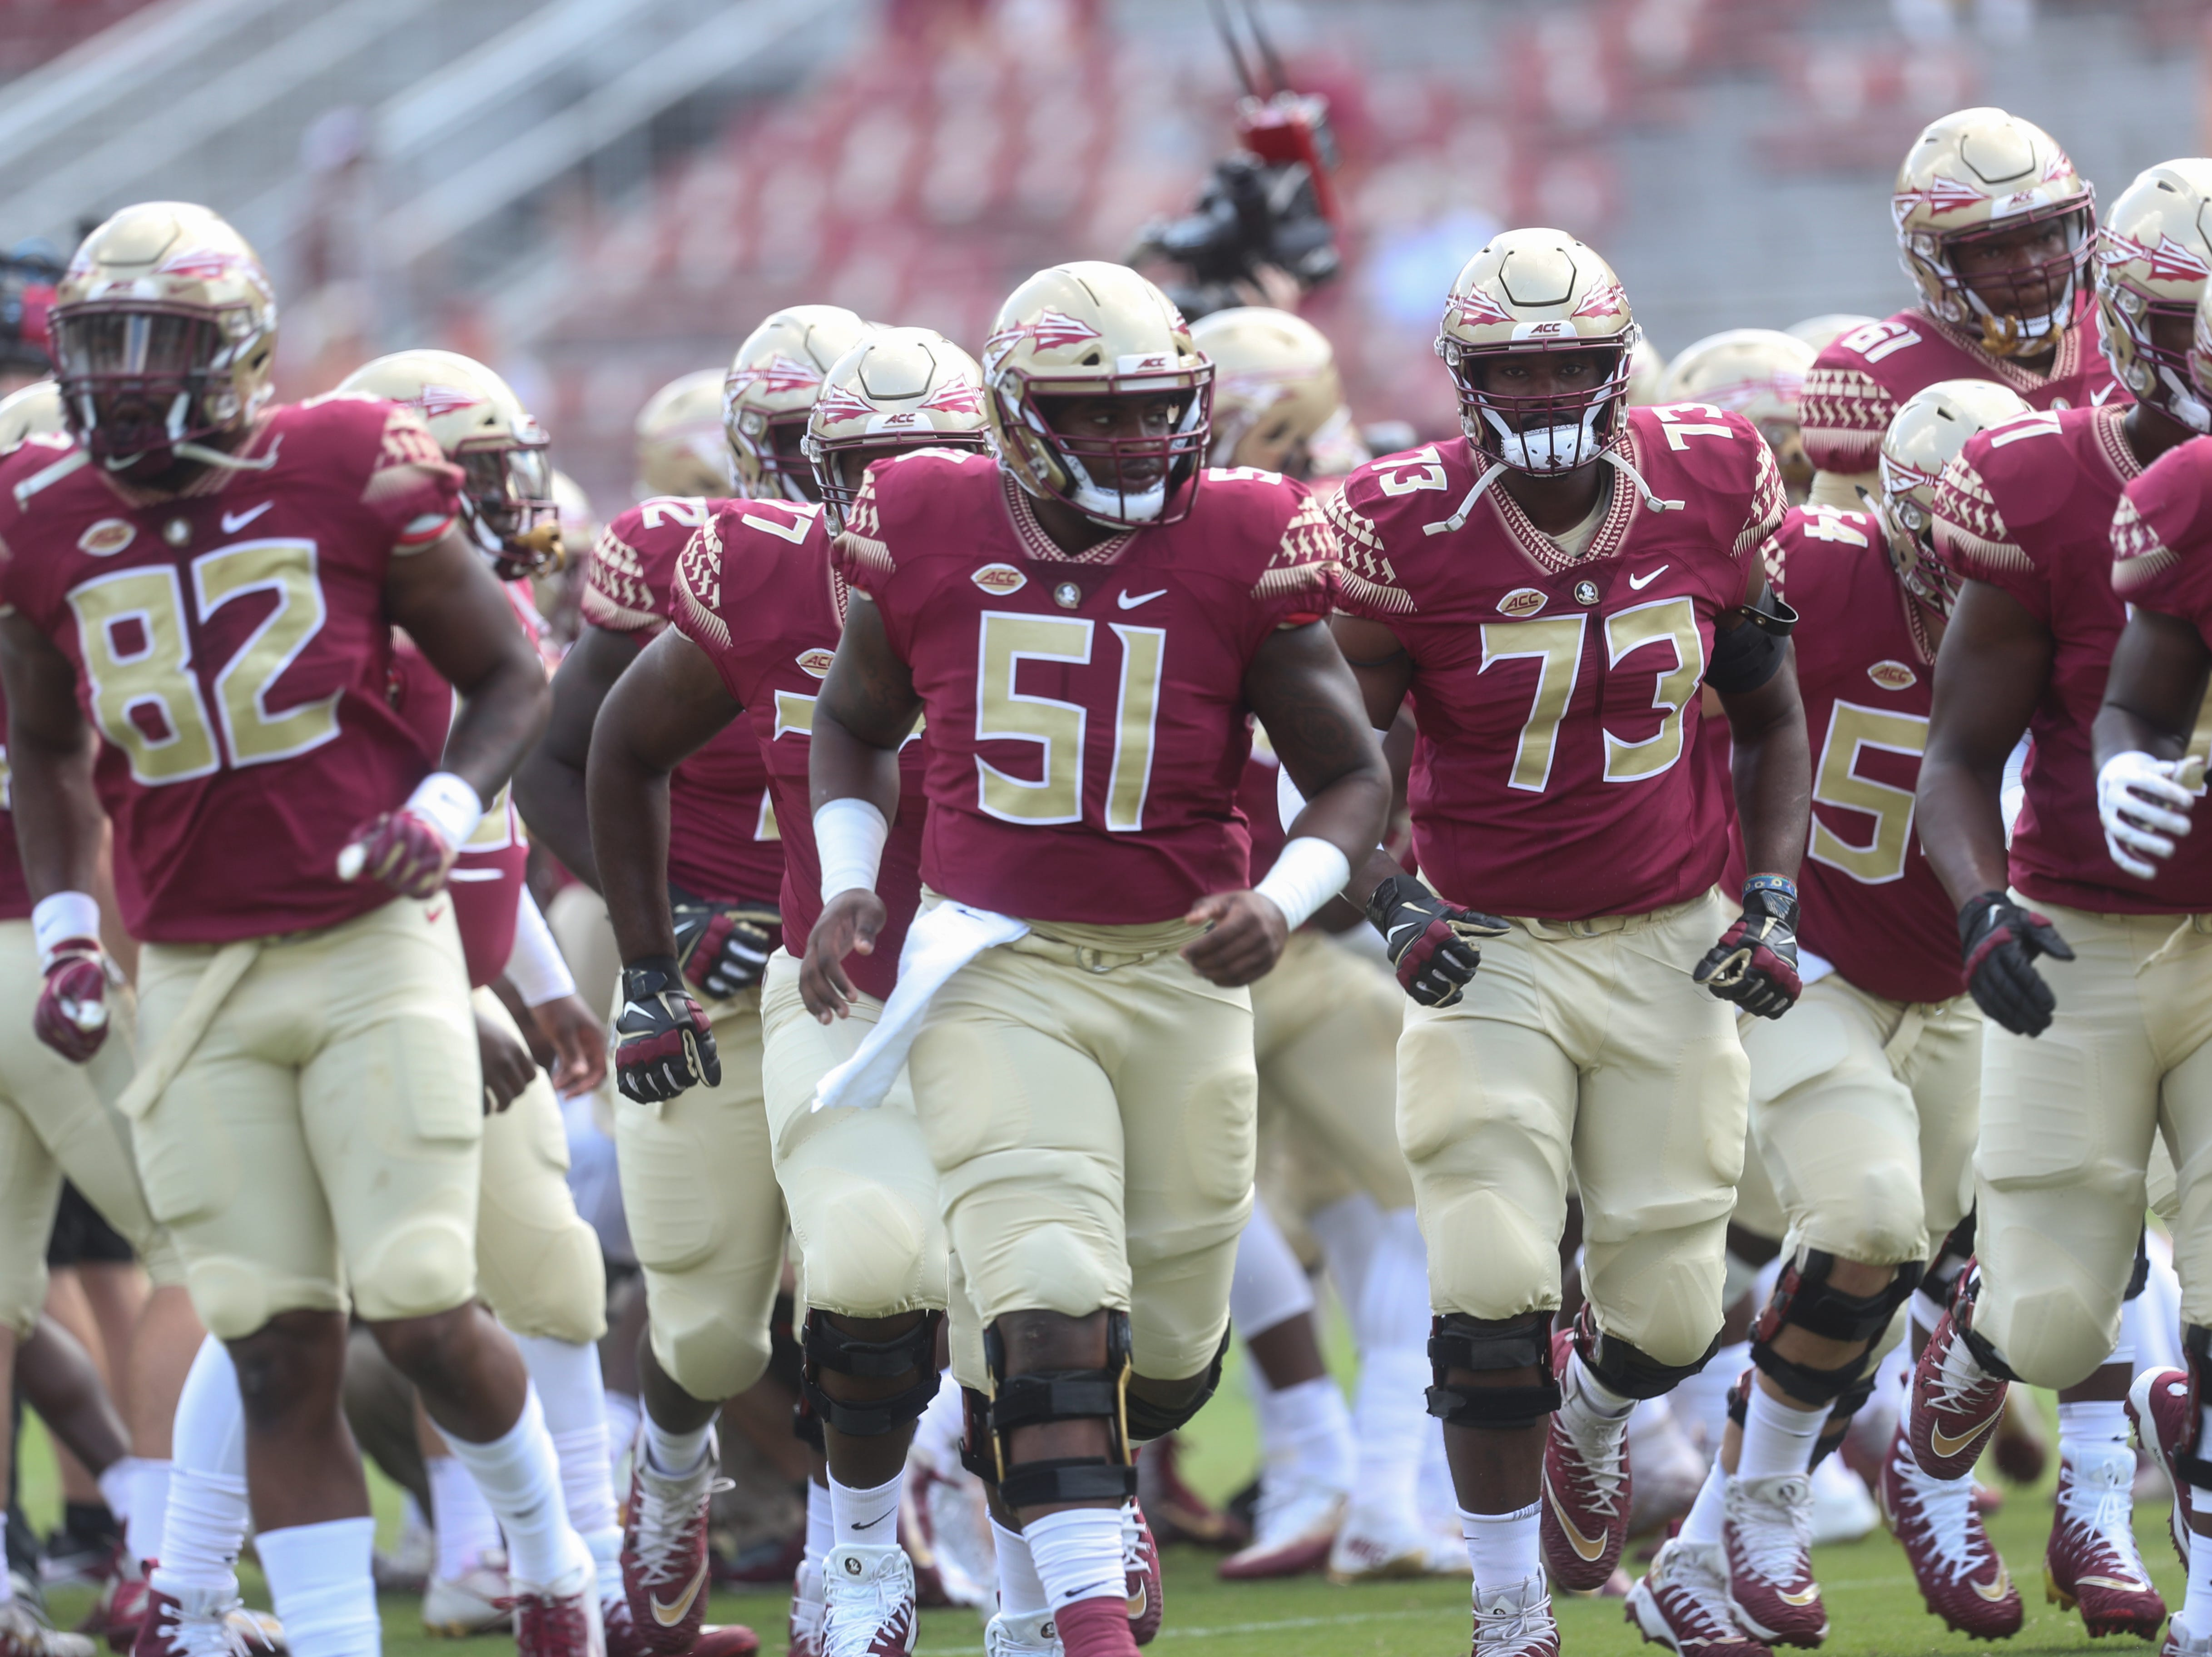 The FSU Seminoles take the field before a game between the Florida State University Seminoles and the Northern Illinois University Huskies at Doak S. Campbell Stadium in Tallahassee, Fla. Saturday, September 22, 2018.